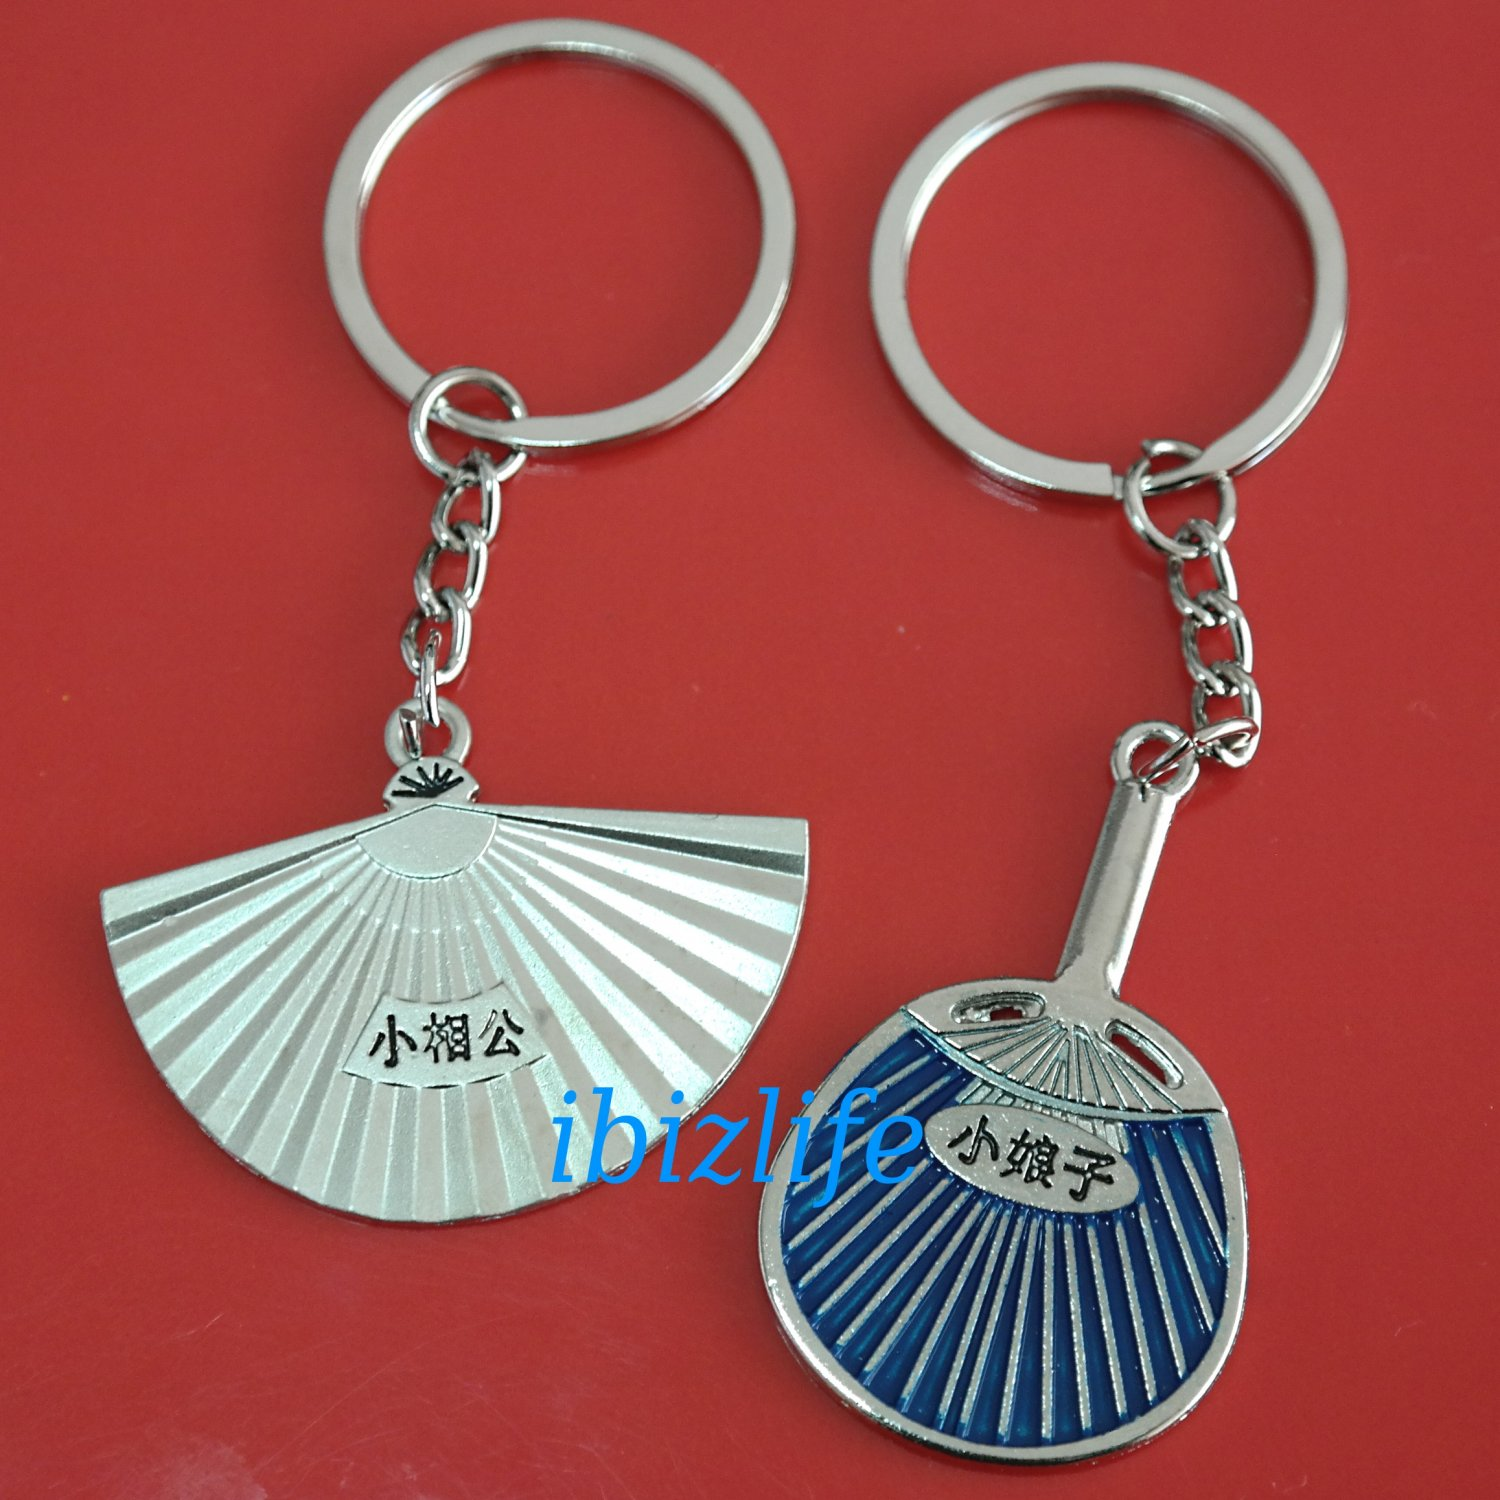 Metal keychain / Keyrings with a pair Japanese cultural fans indicating Husband and Wife (kc21)